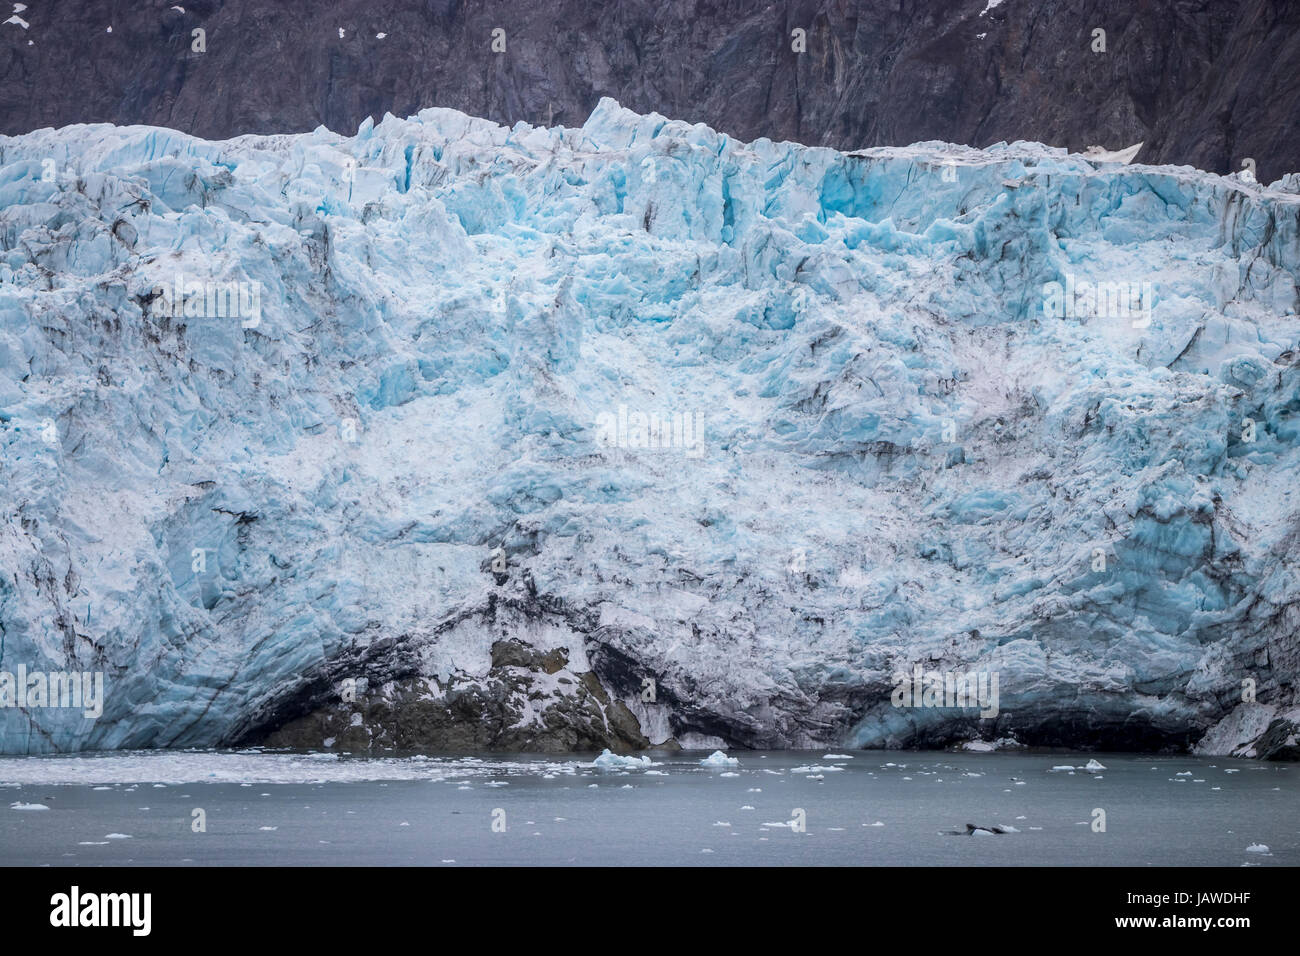 A close up of the toe of the Margerie Glacier in Glacier Bay, Alaska, USA. - Stock Image